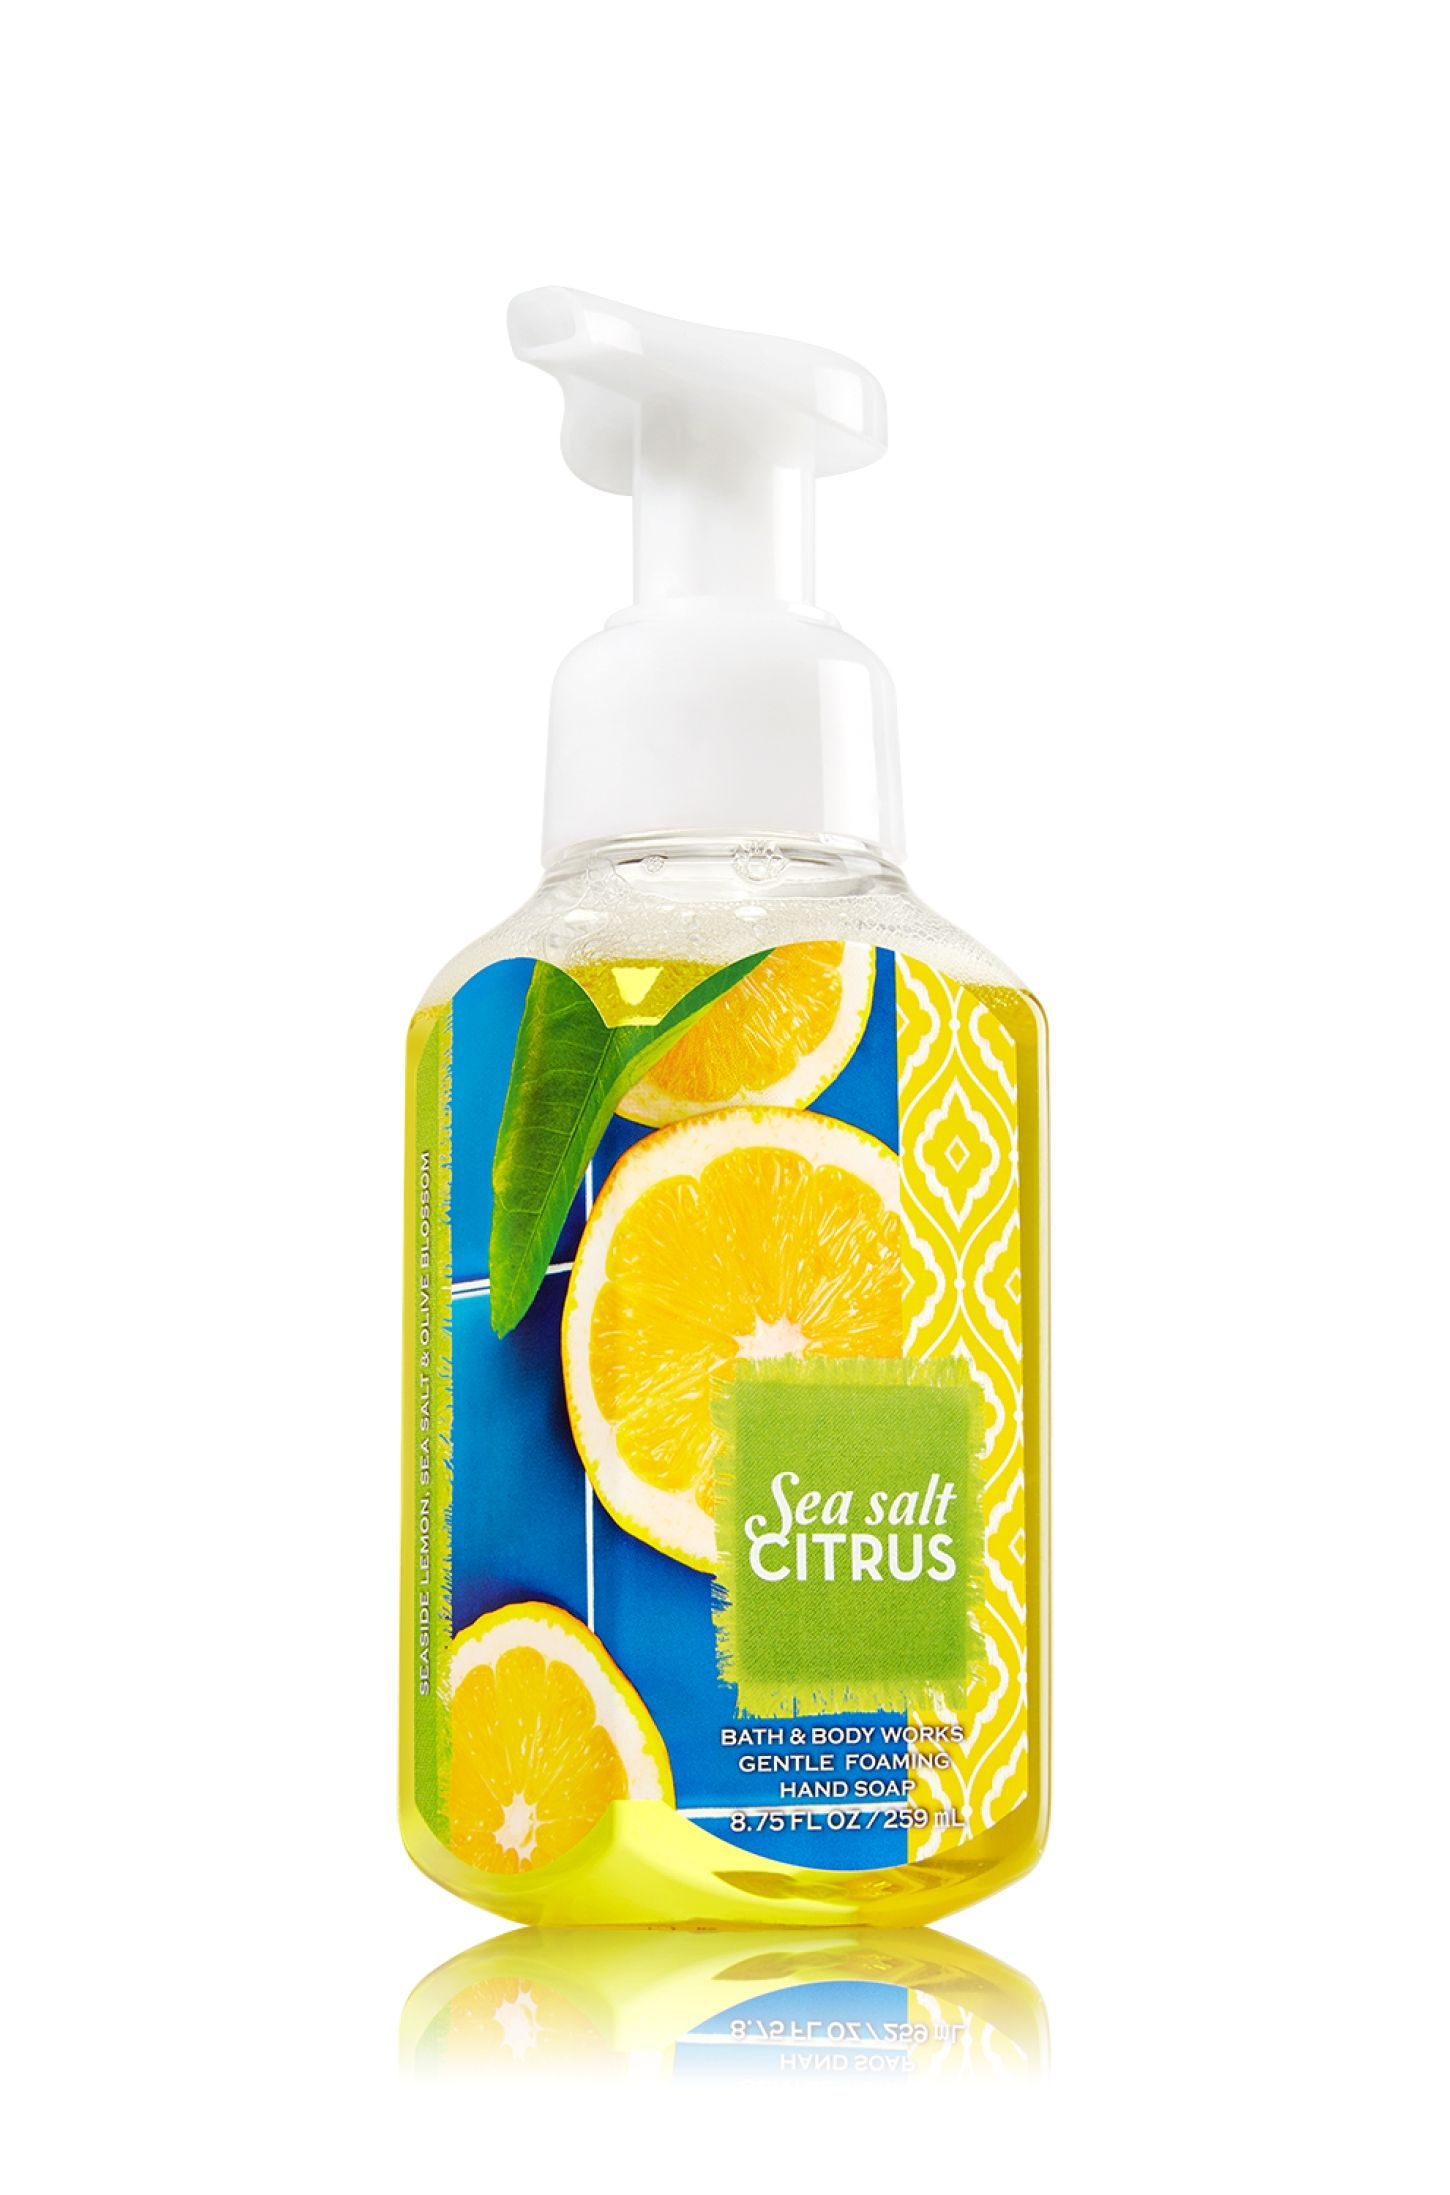 Sea Salt Citrus Gentle Foaming Hand Soap Soap Sanitizer Bath